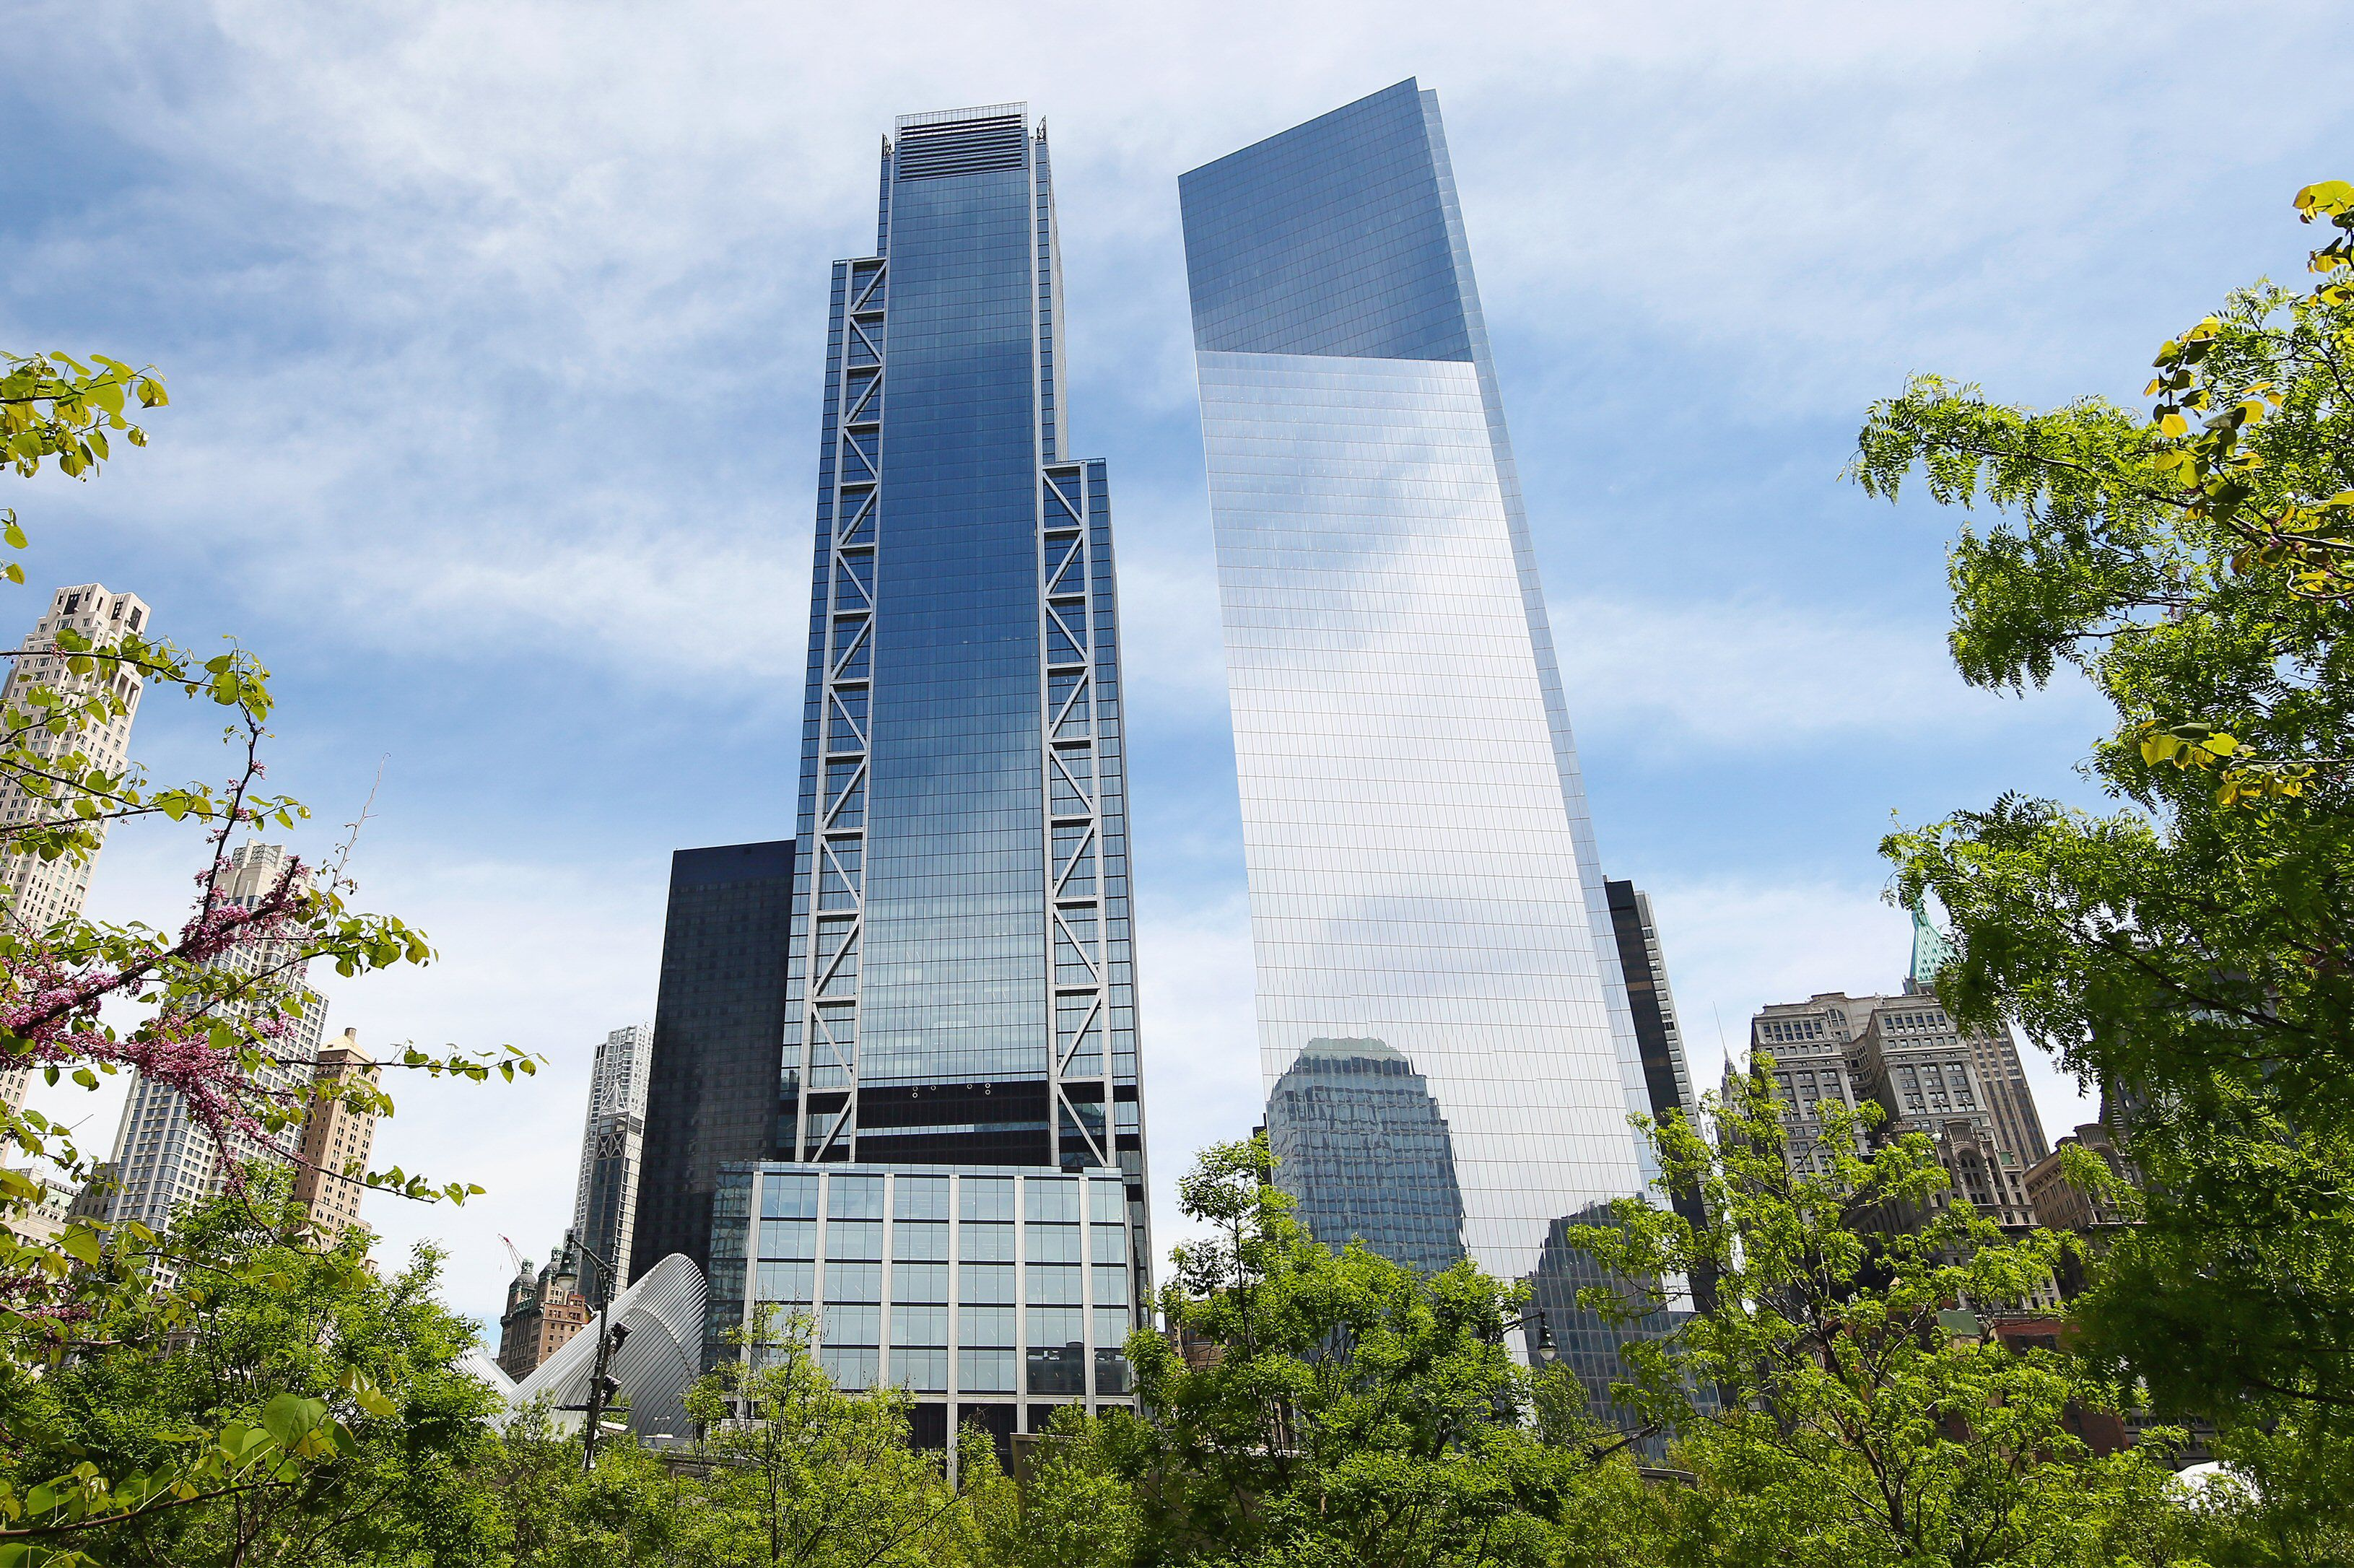 two skyscrapers rising from leafy trees